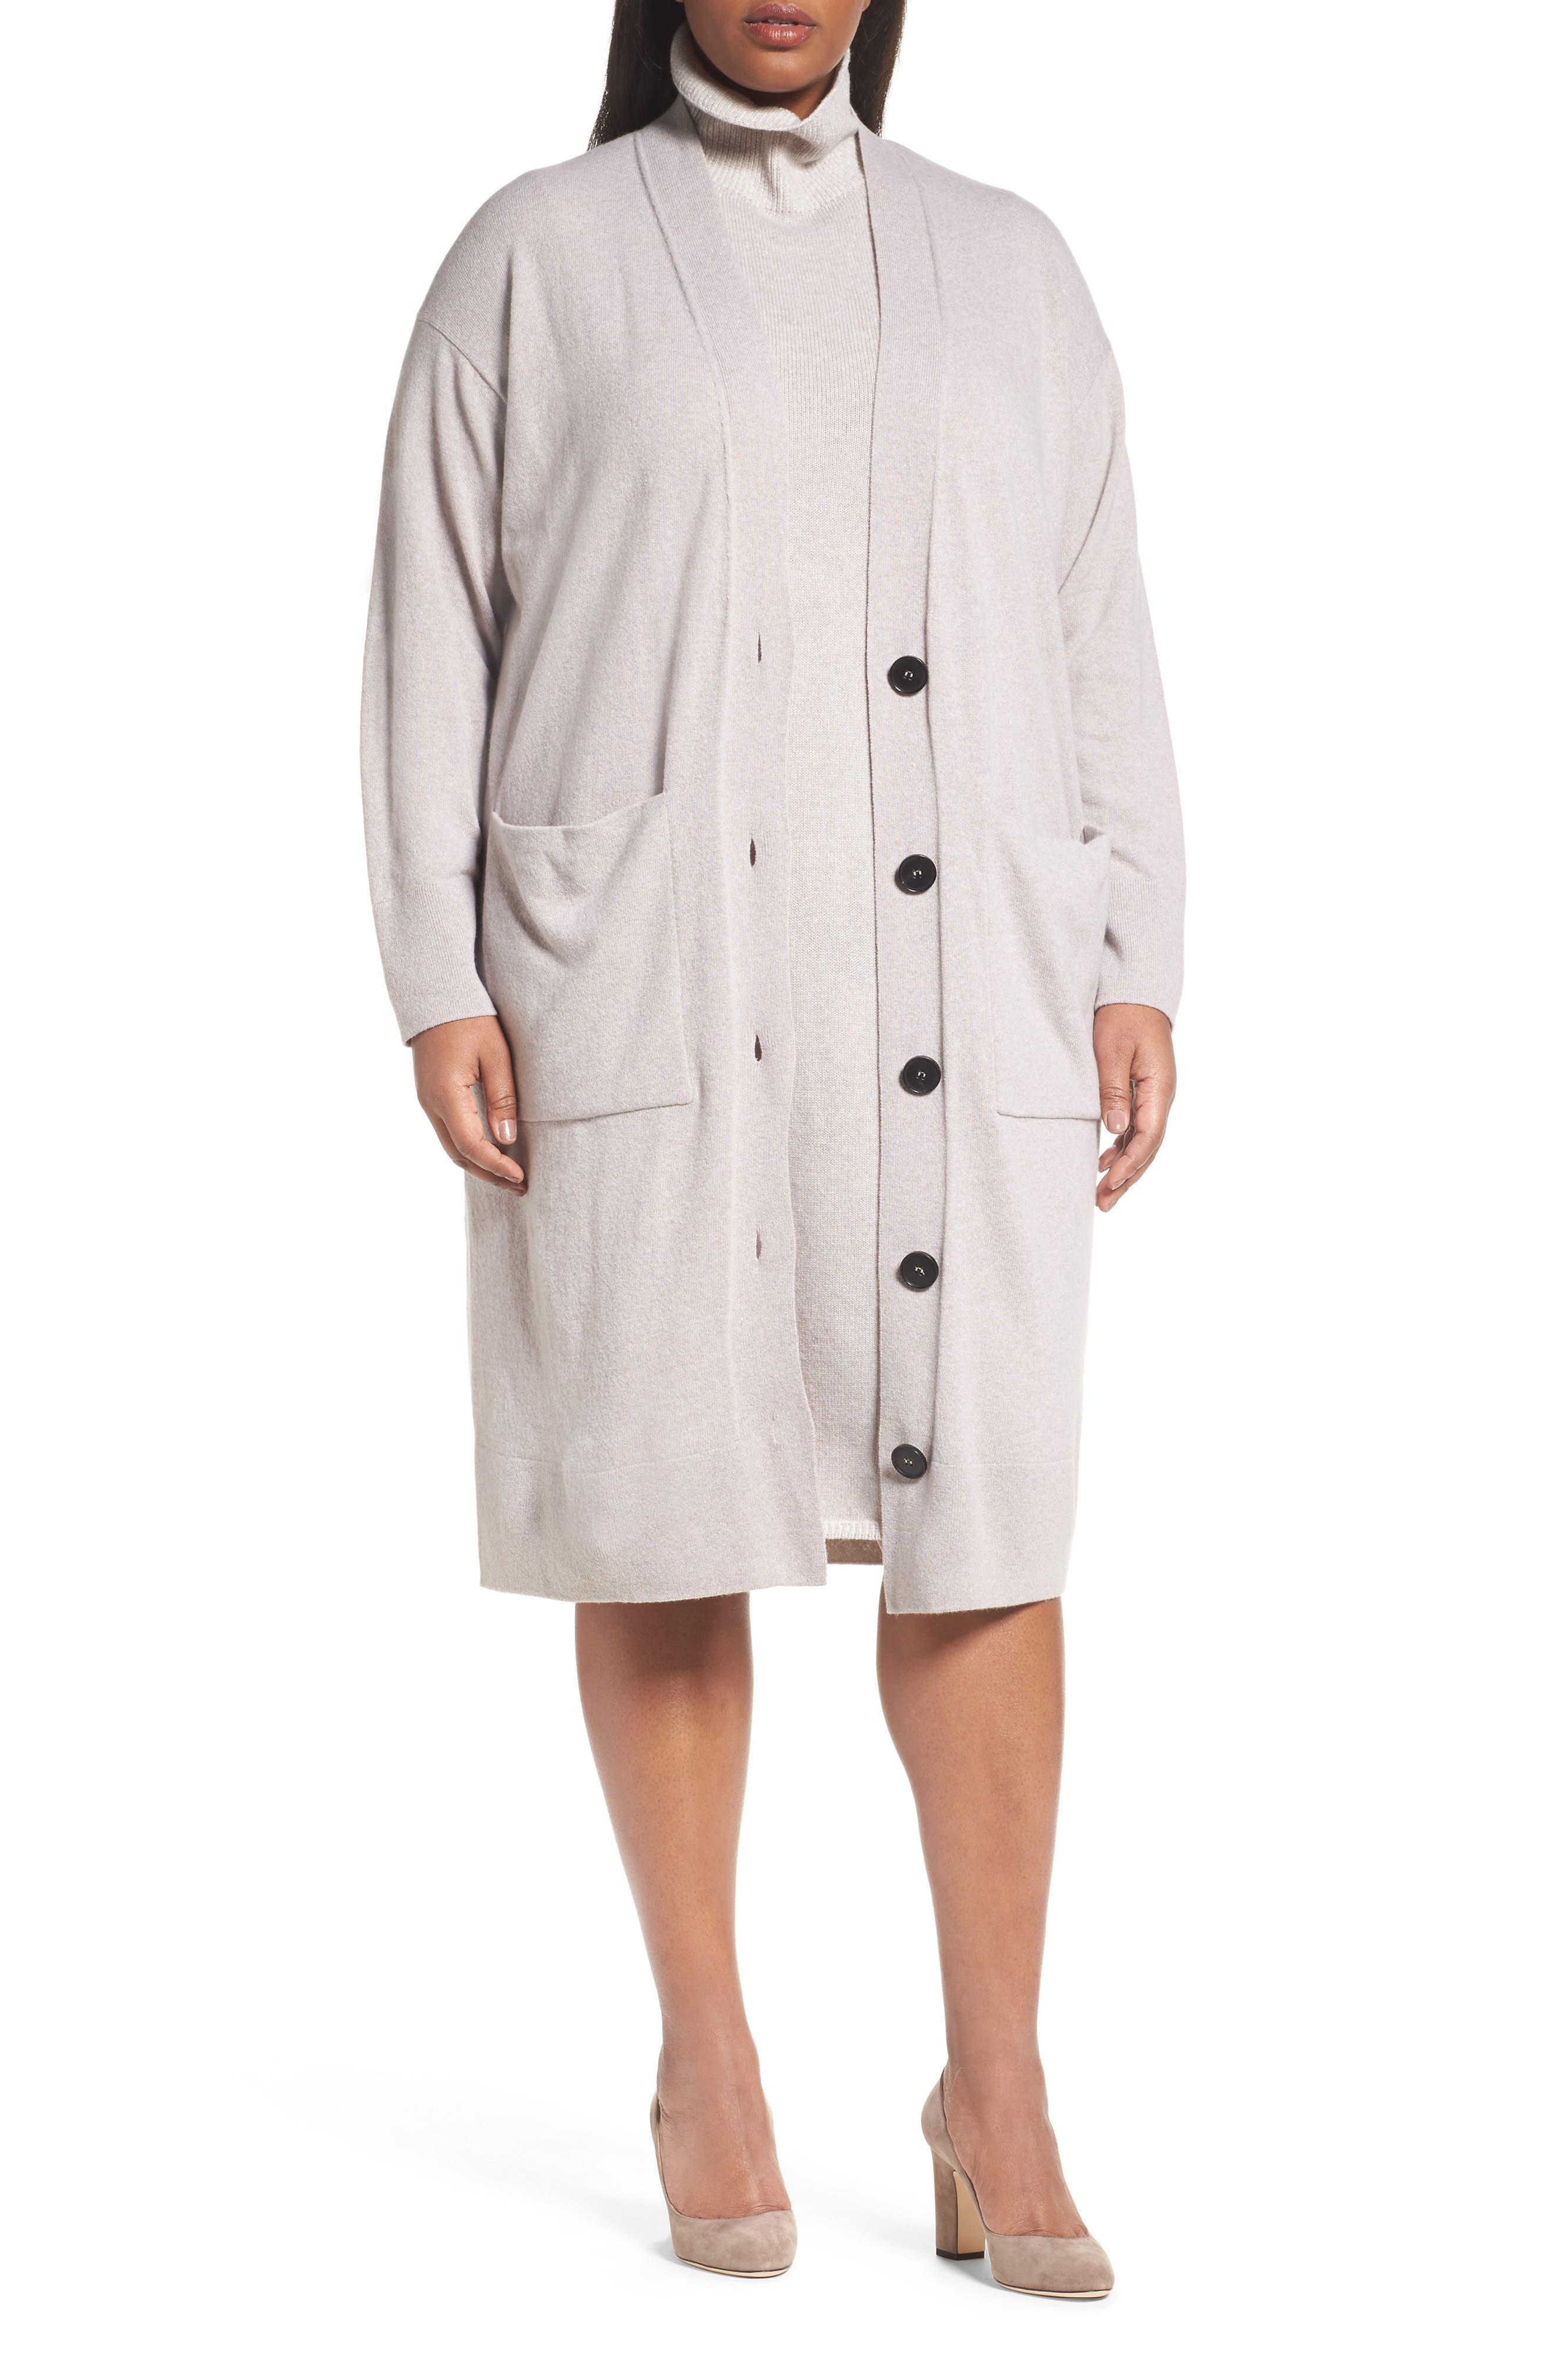 Alternate Image 1 Selected - Lafayette 148 New York Long Merino Wool & Cashmere Cardigan (Plus Size)